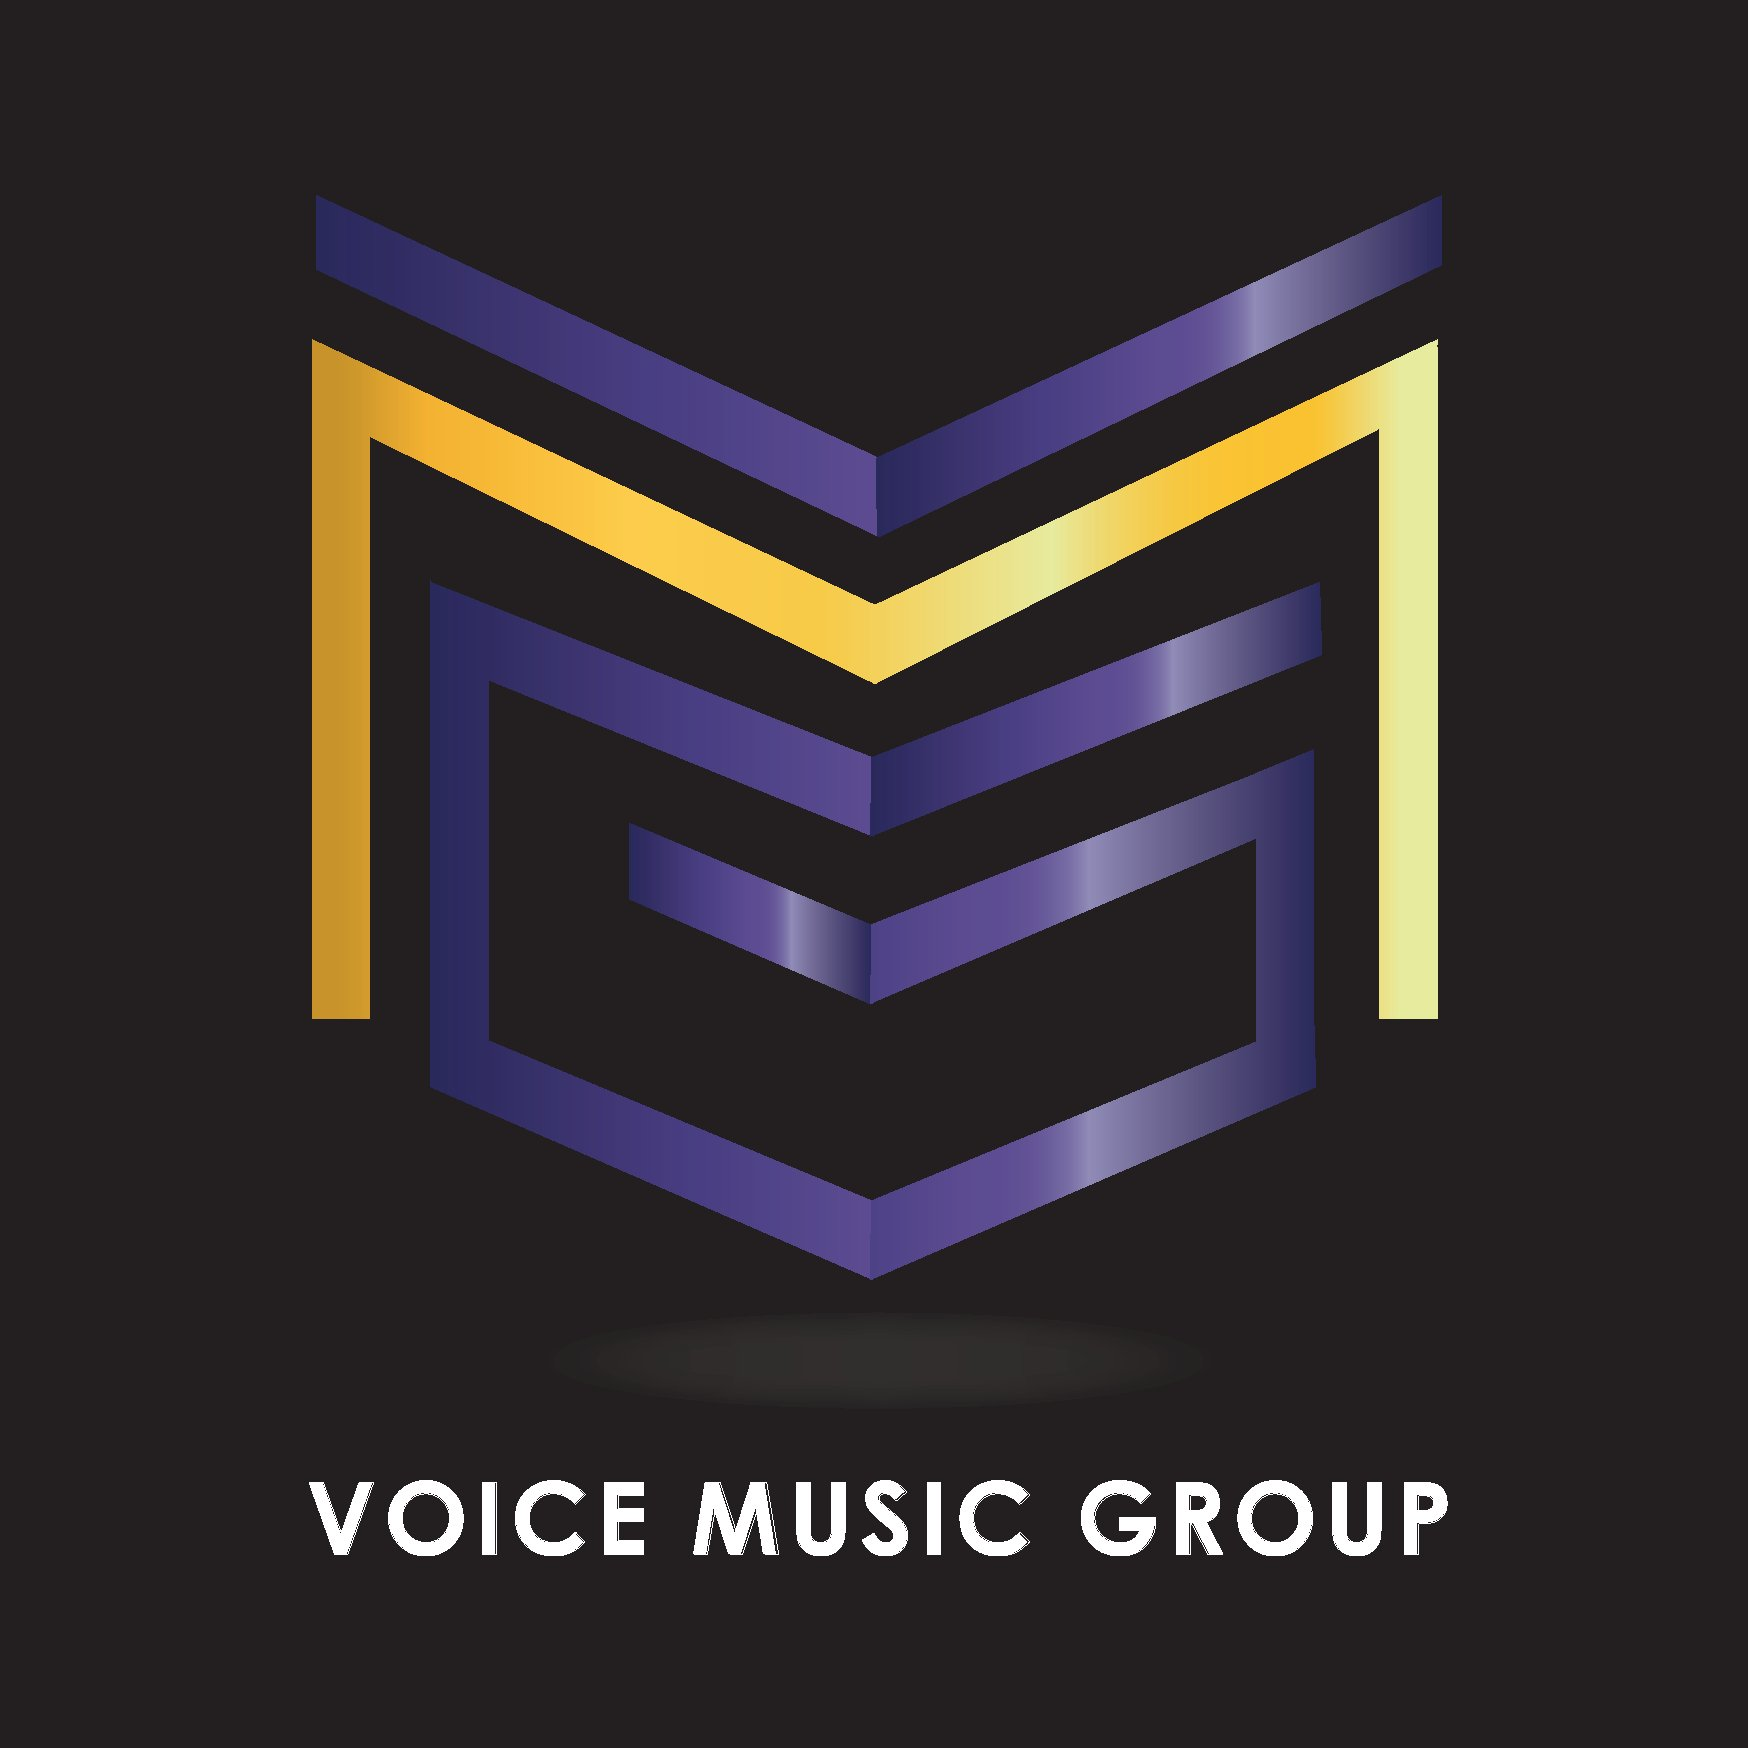 Voice music group voicemusicgroup twitter voice music group biocorpaavc